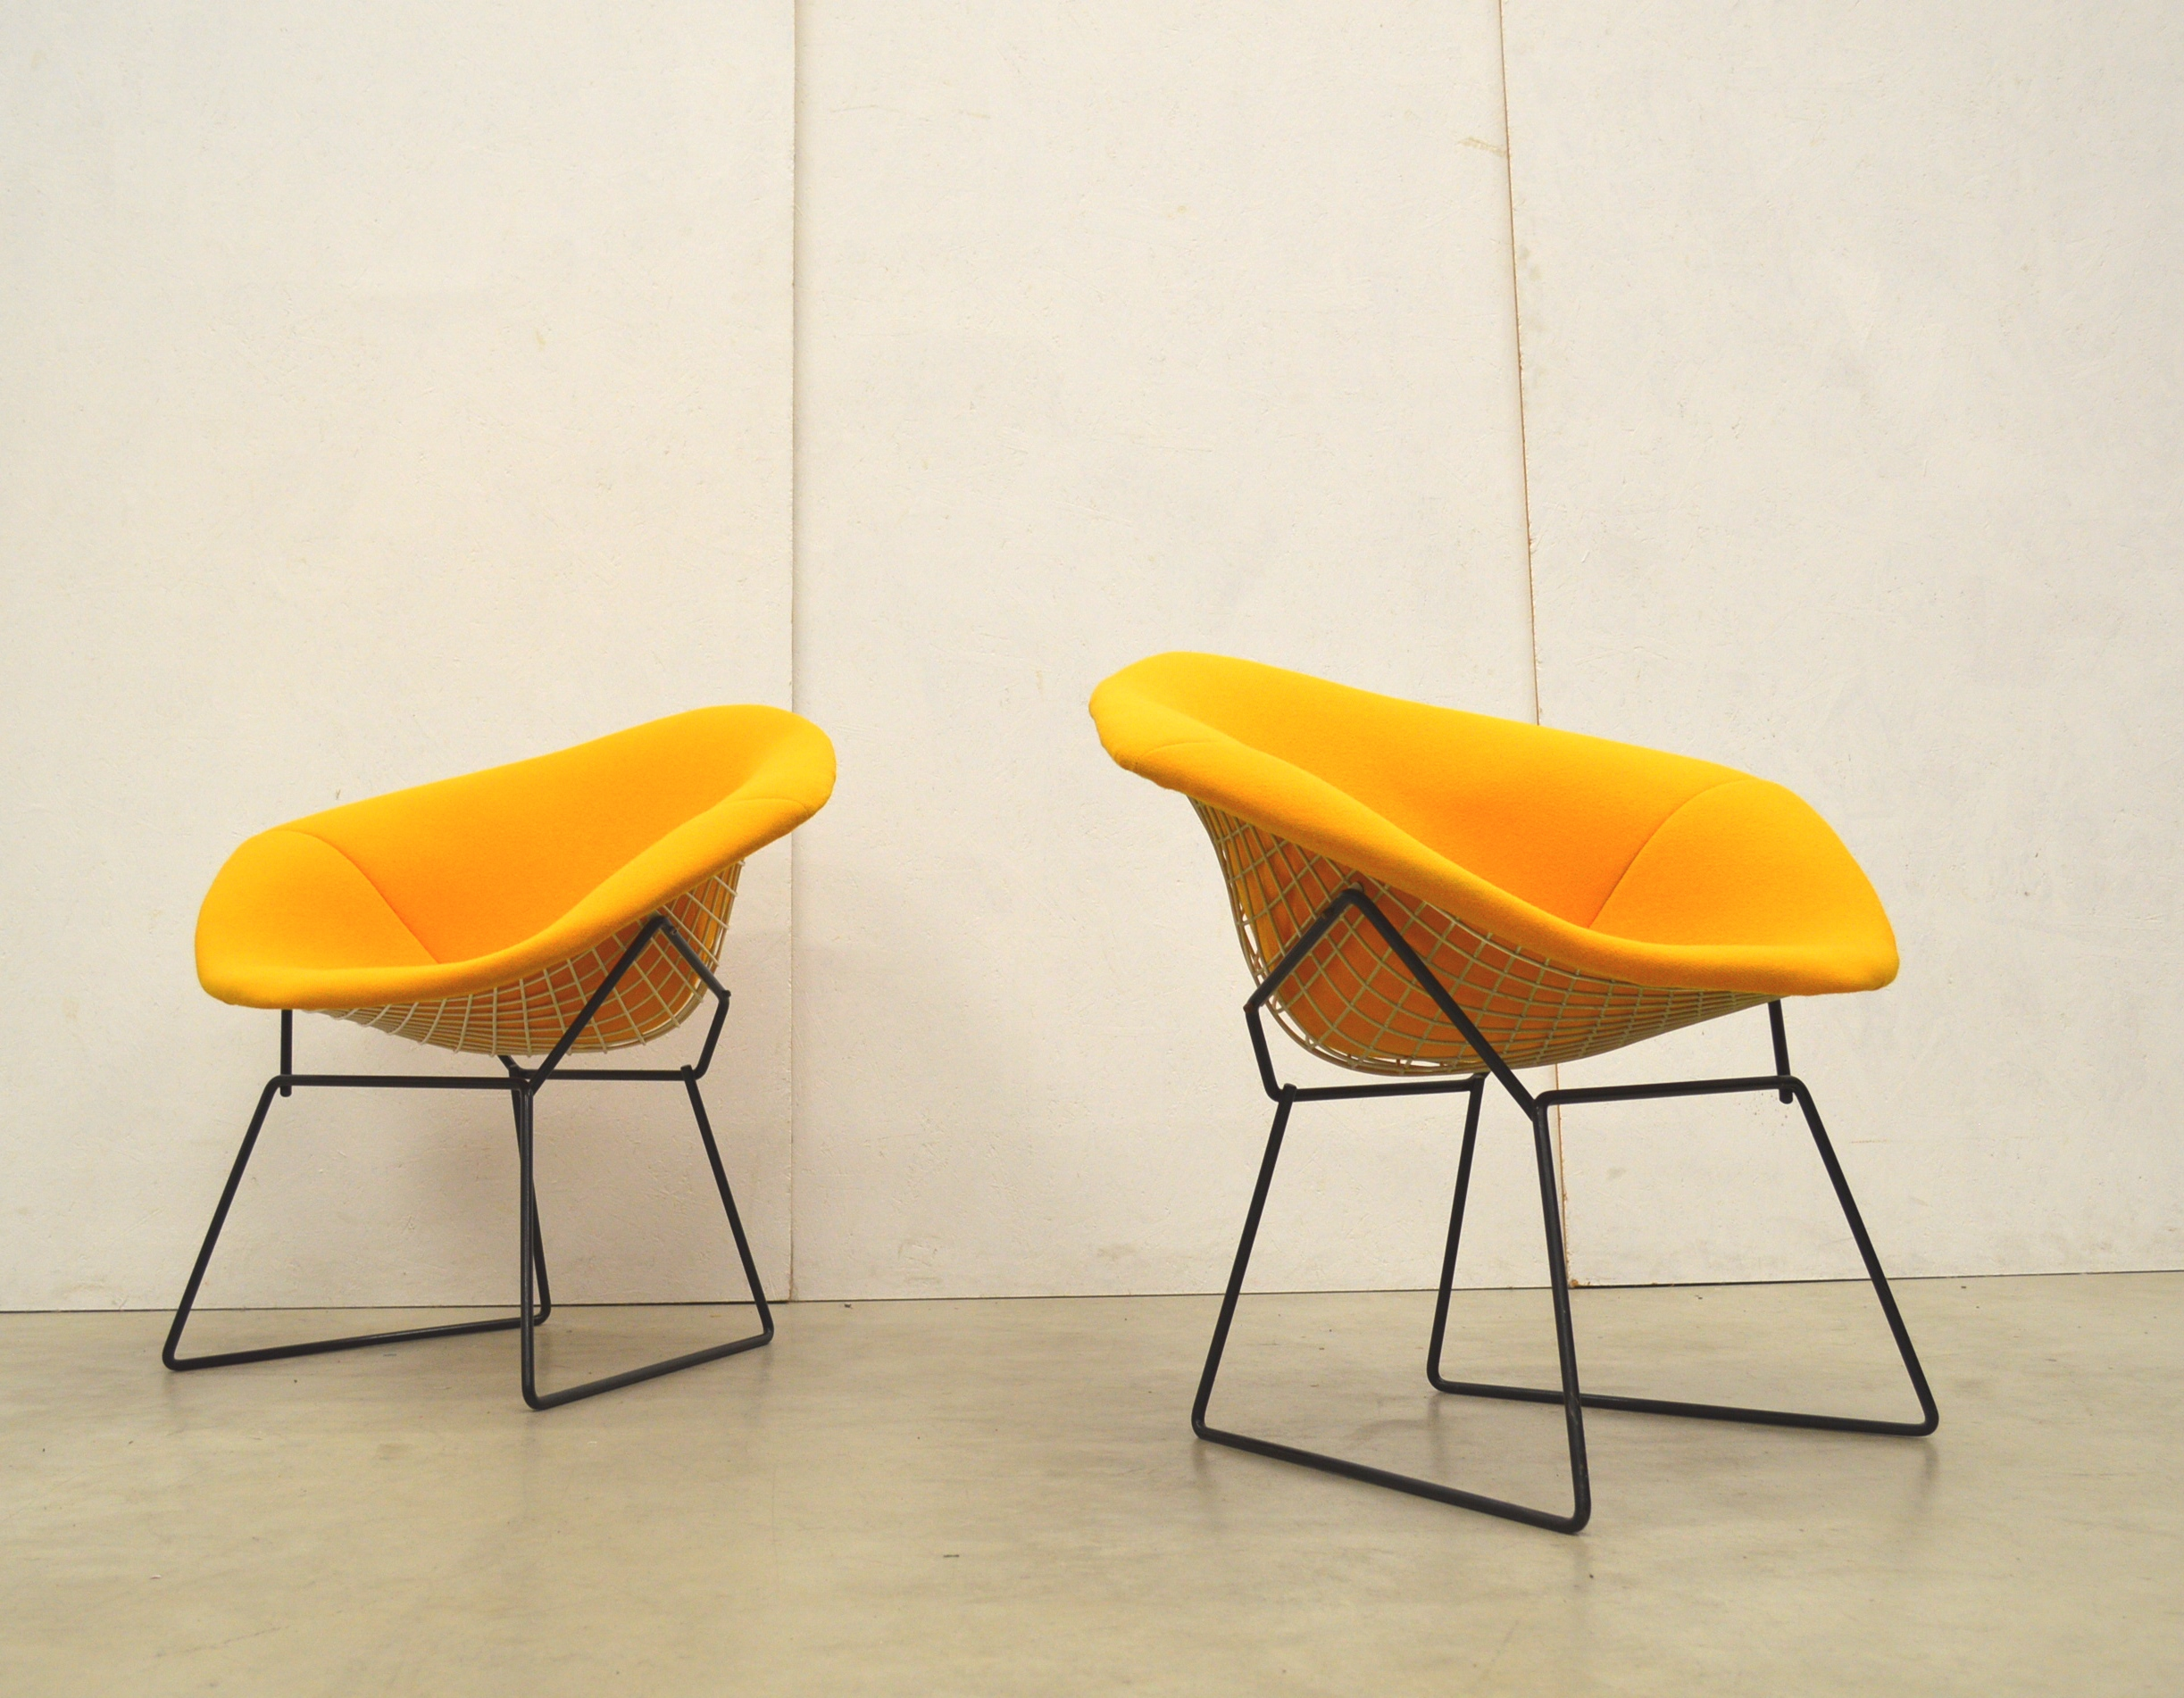 Pair Of Harry Bertoia Diamond Chair By Knoll International Yellow